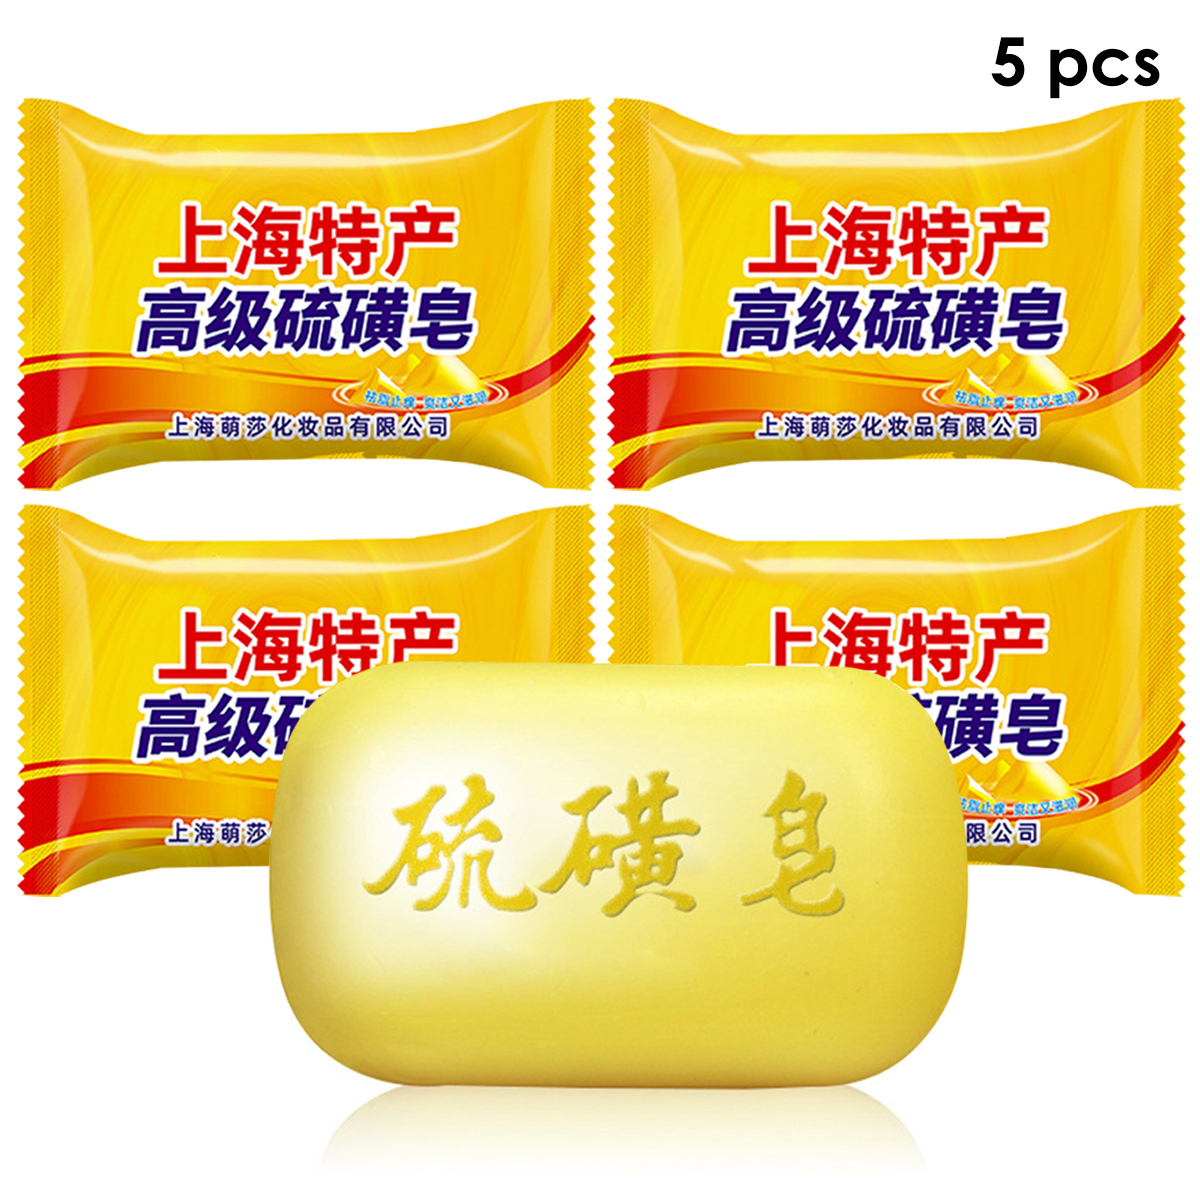 2pcs/5pcs Sulfur Soap Oil-Control Treatment Itching Relief Remover Soap Sulfur Soaps For Face Hand Cleansing Bathing Cleanser